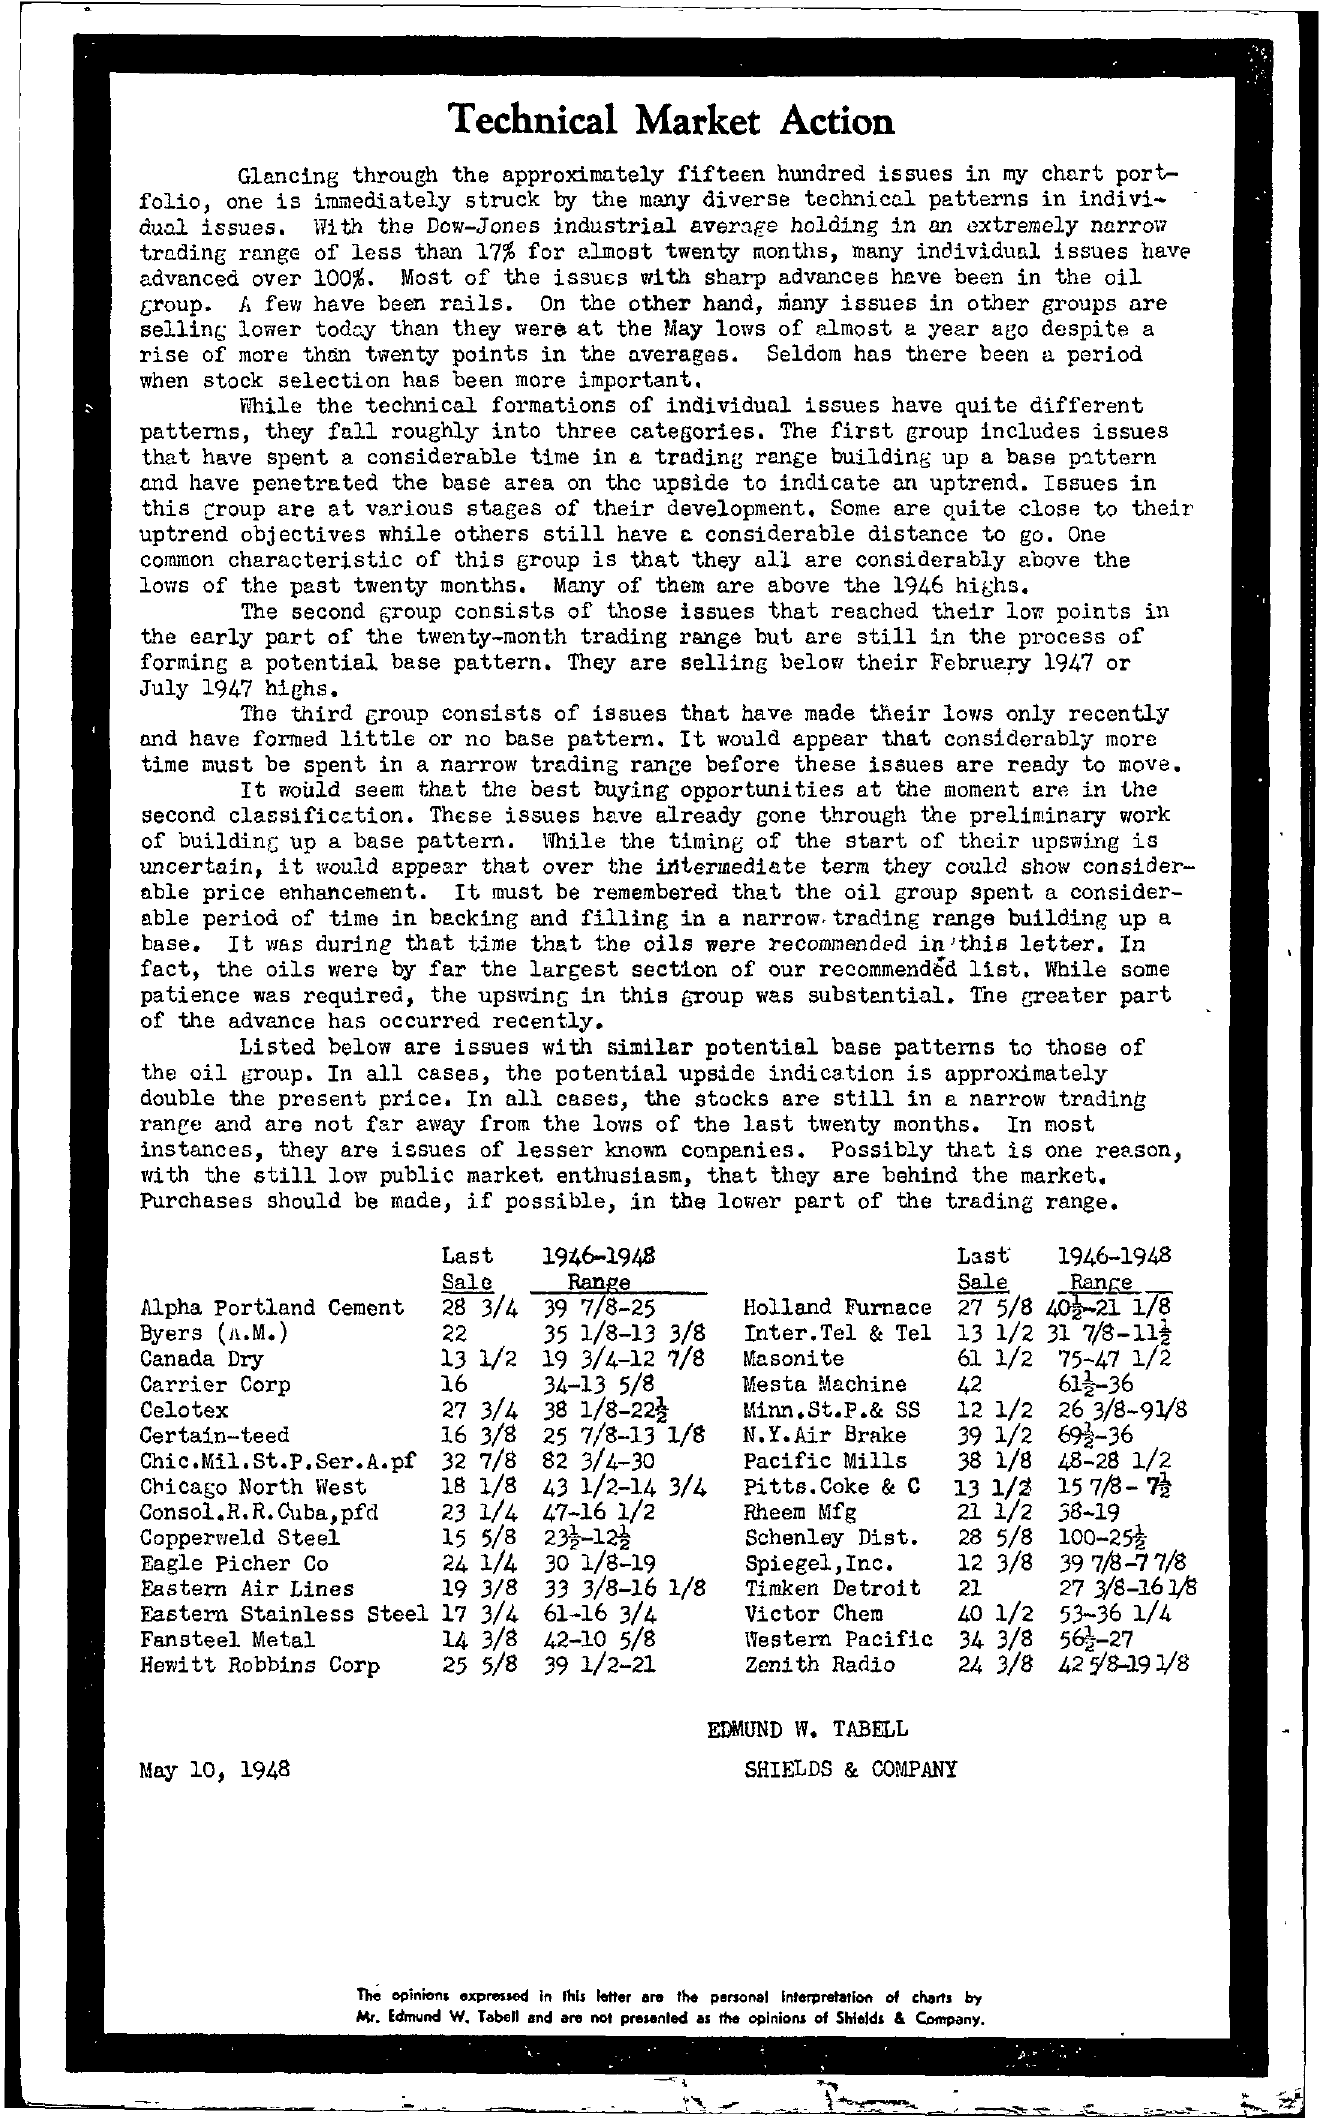 Tabell's Market Letter - May 10, 1948